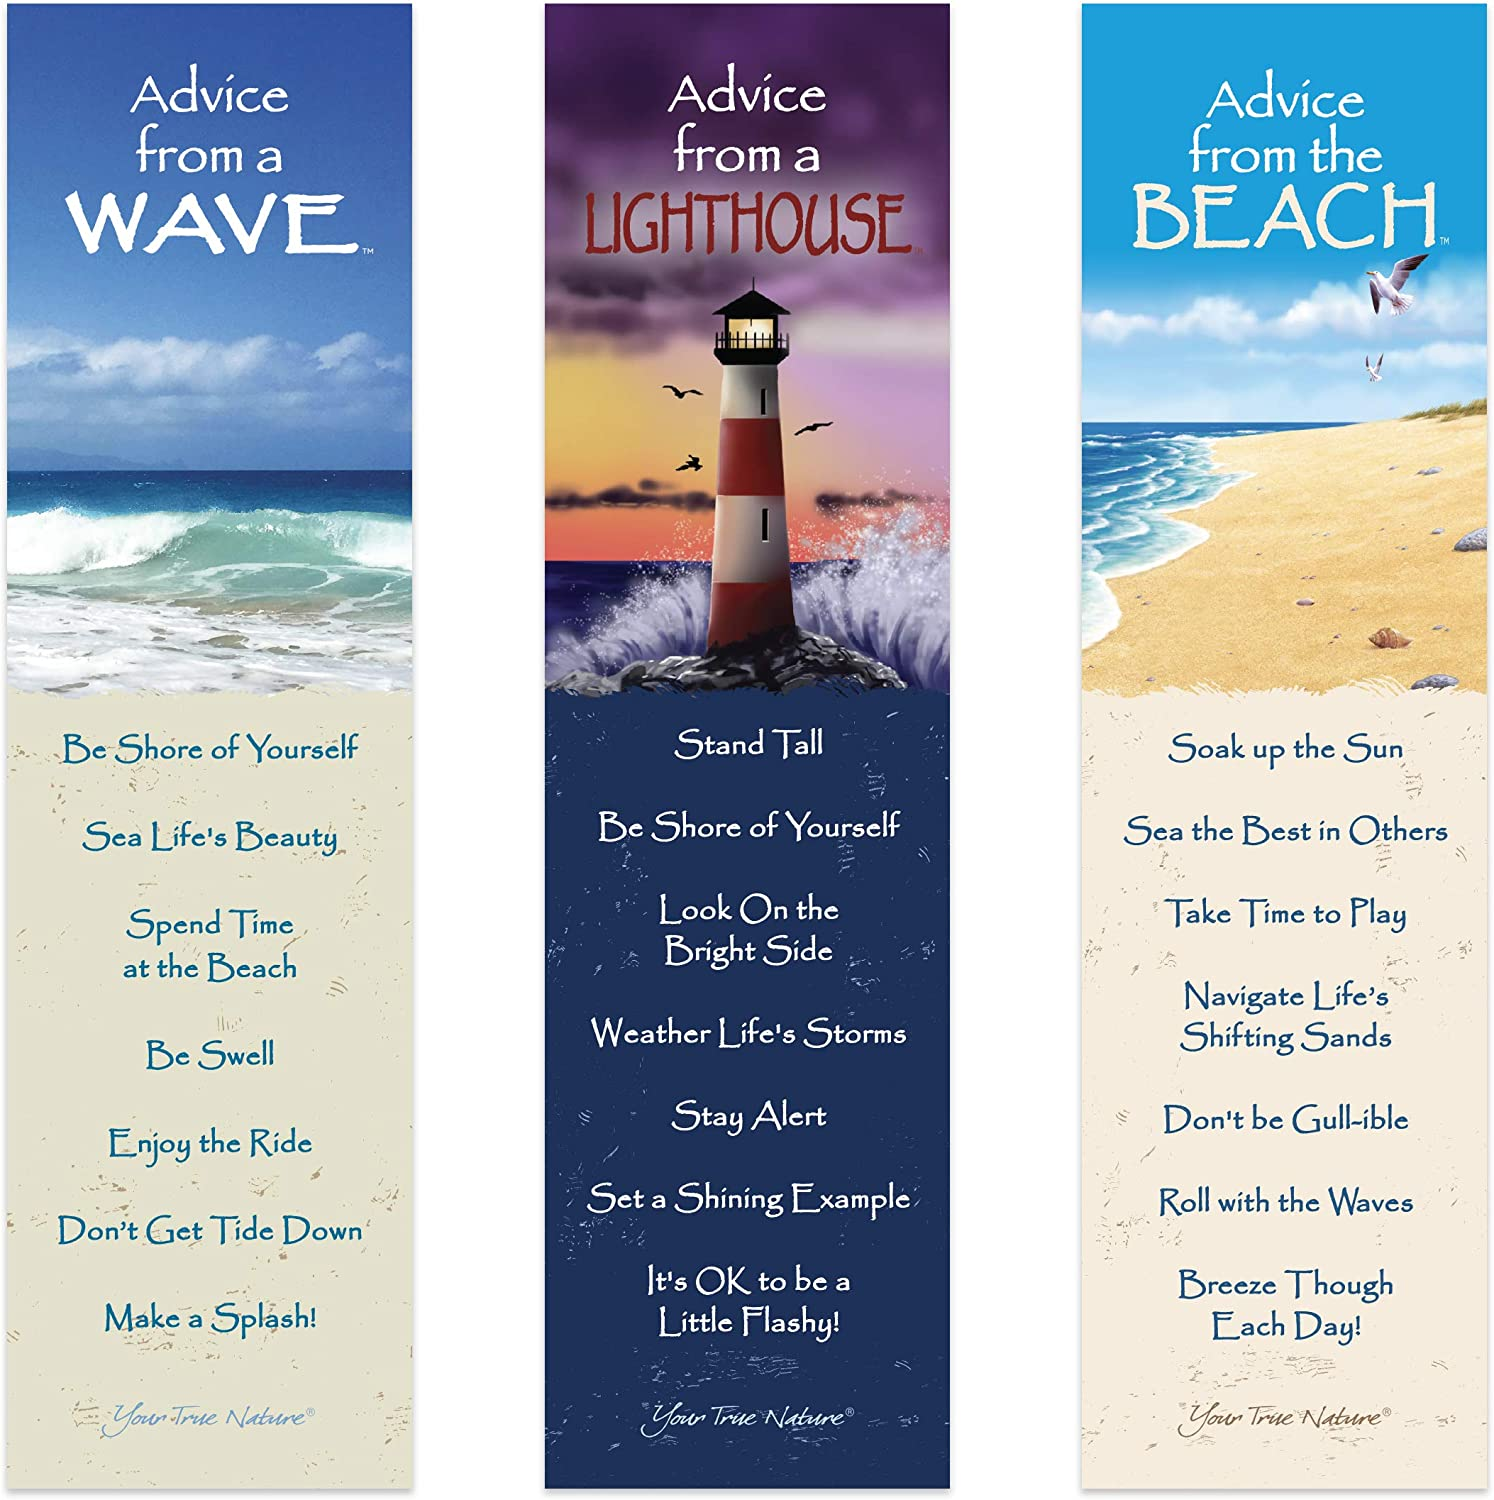 Advice from Nature 3 Bookmark Coastal Set - Wave, Lighthouse, Beach by Your True Nature